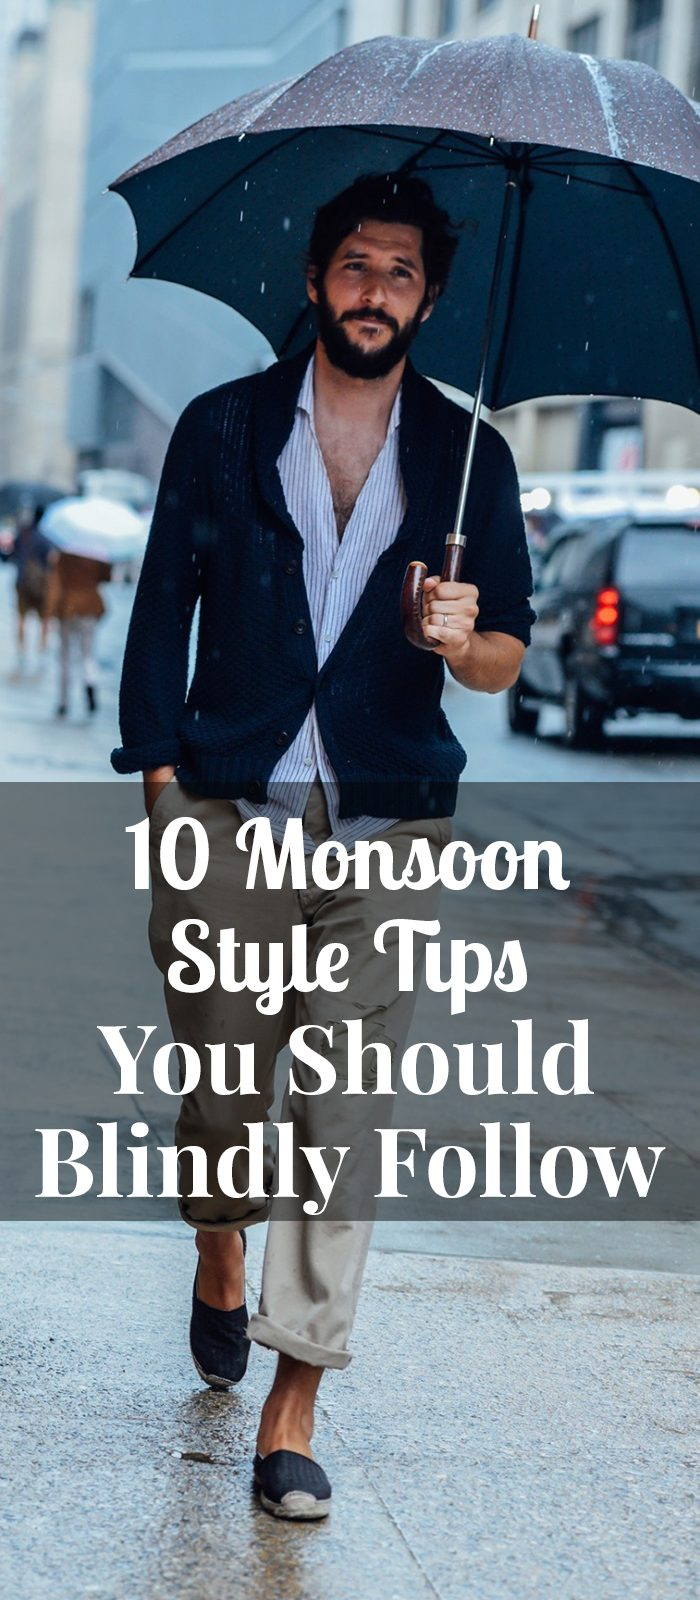 10 Monsoon Style Tips You Should Blindly Follow